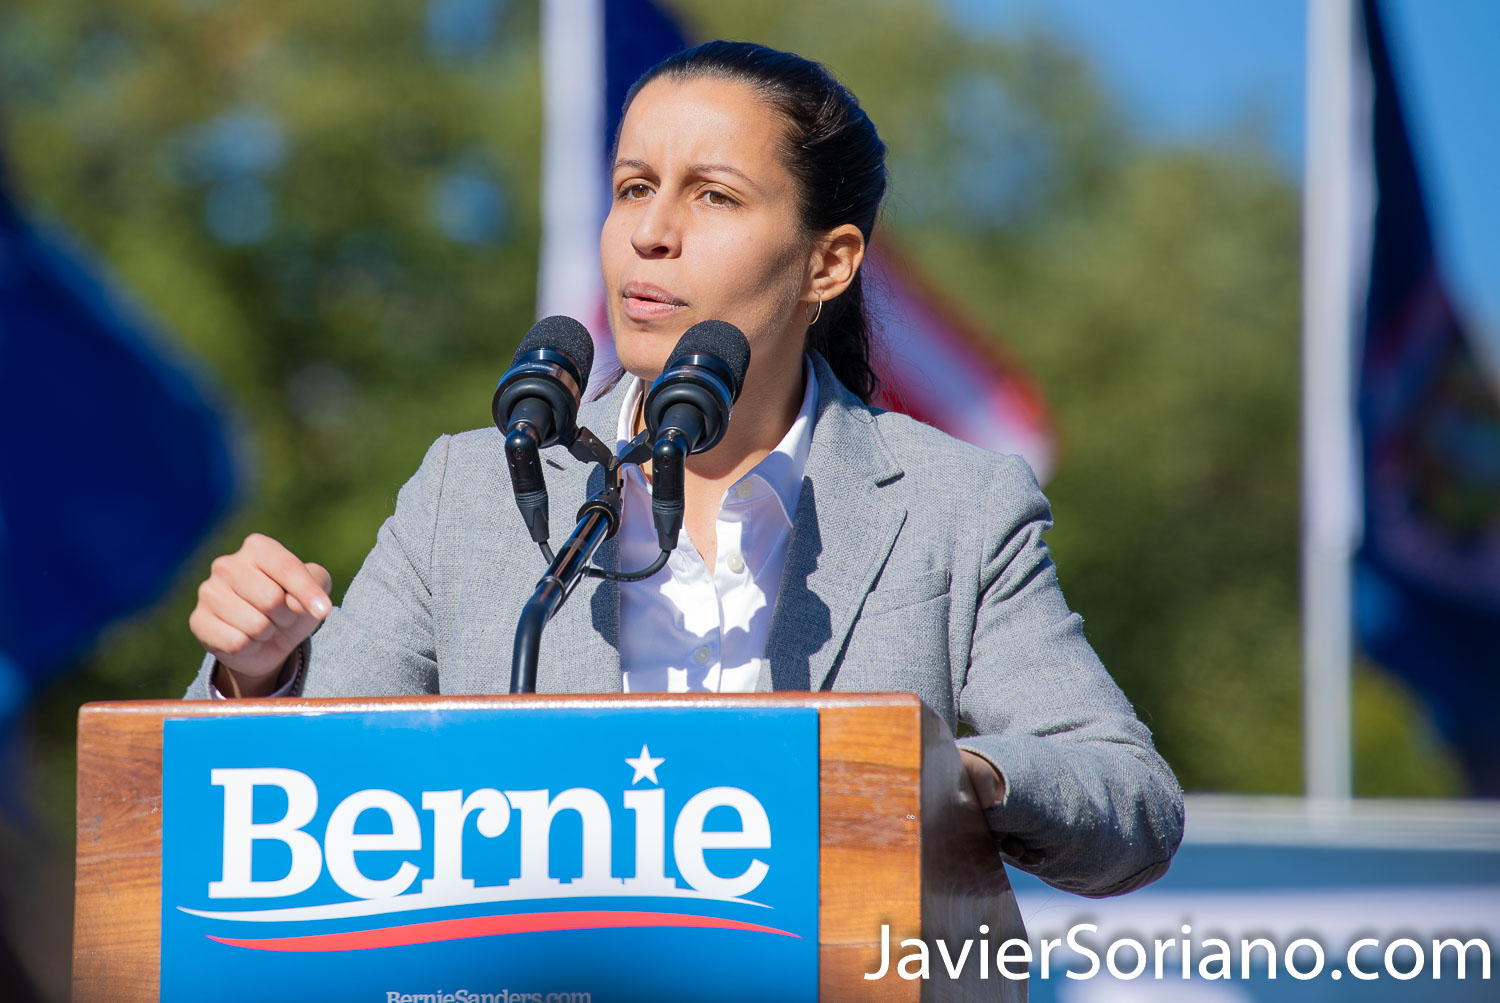 Saturday, October 19, 2019. Queens, New York City - Today Senator and presidential candidate Bernie Sanders had a rally in Queens. Tiffany Cabán was one of the speakers. Almost 26 thousand people attended the event. On Thursday, September 10, 2020, Tiffany Cabán launched her campaign for New York City Council District 22. Photo by Javier Soriano/www.JavierSoriano.com